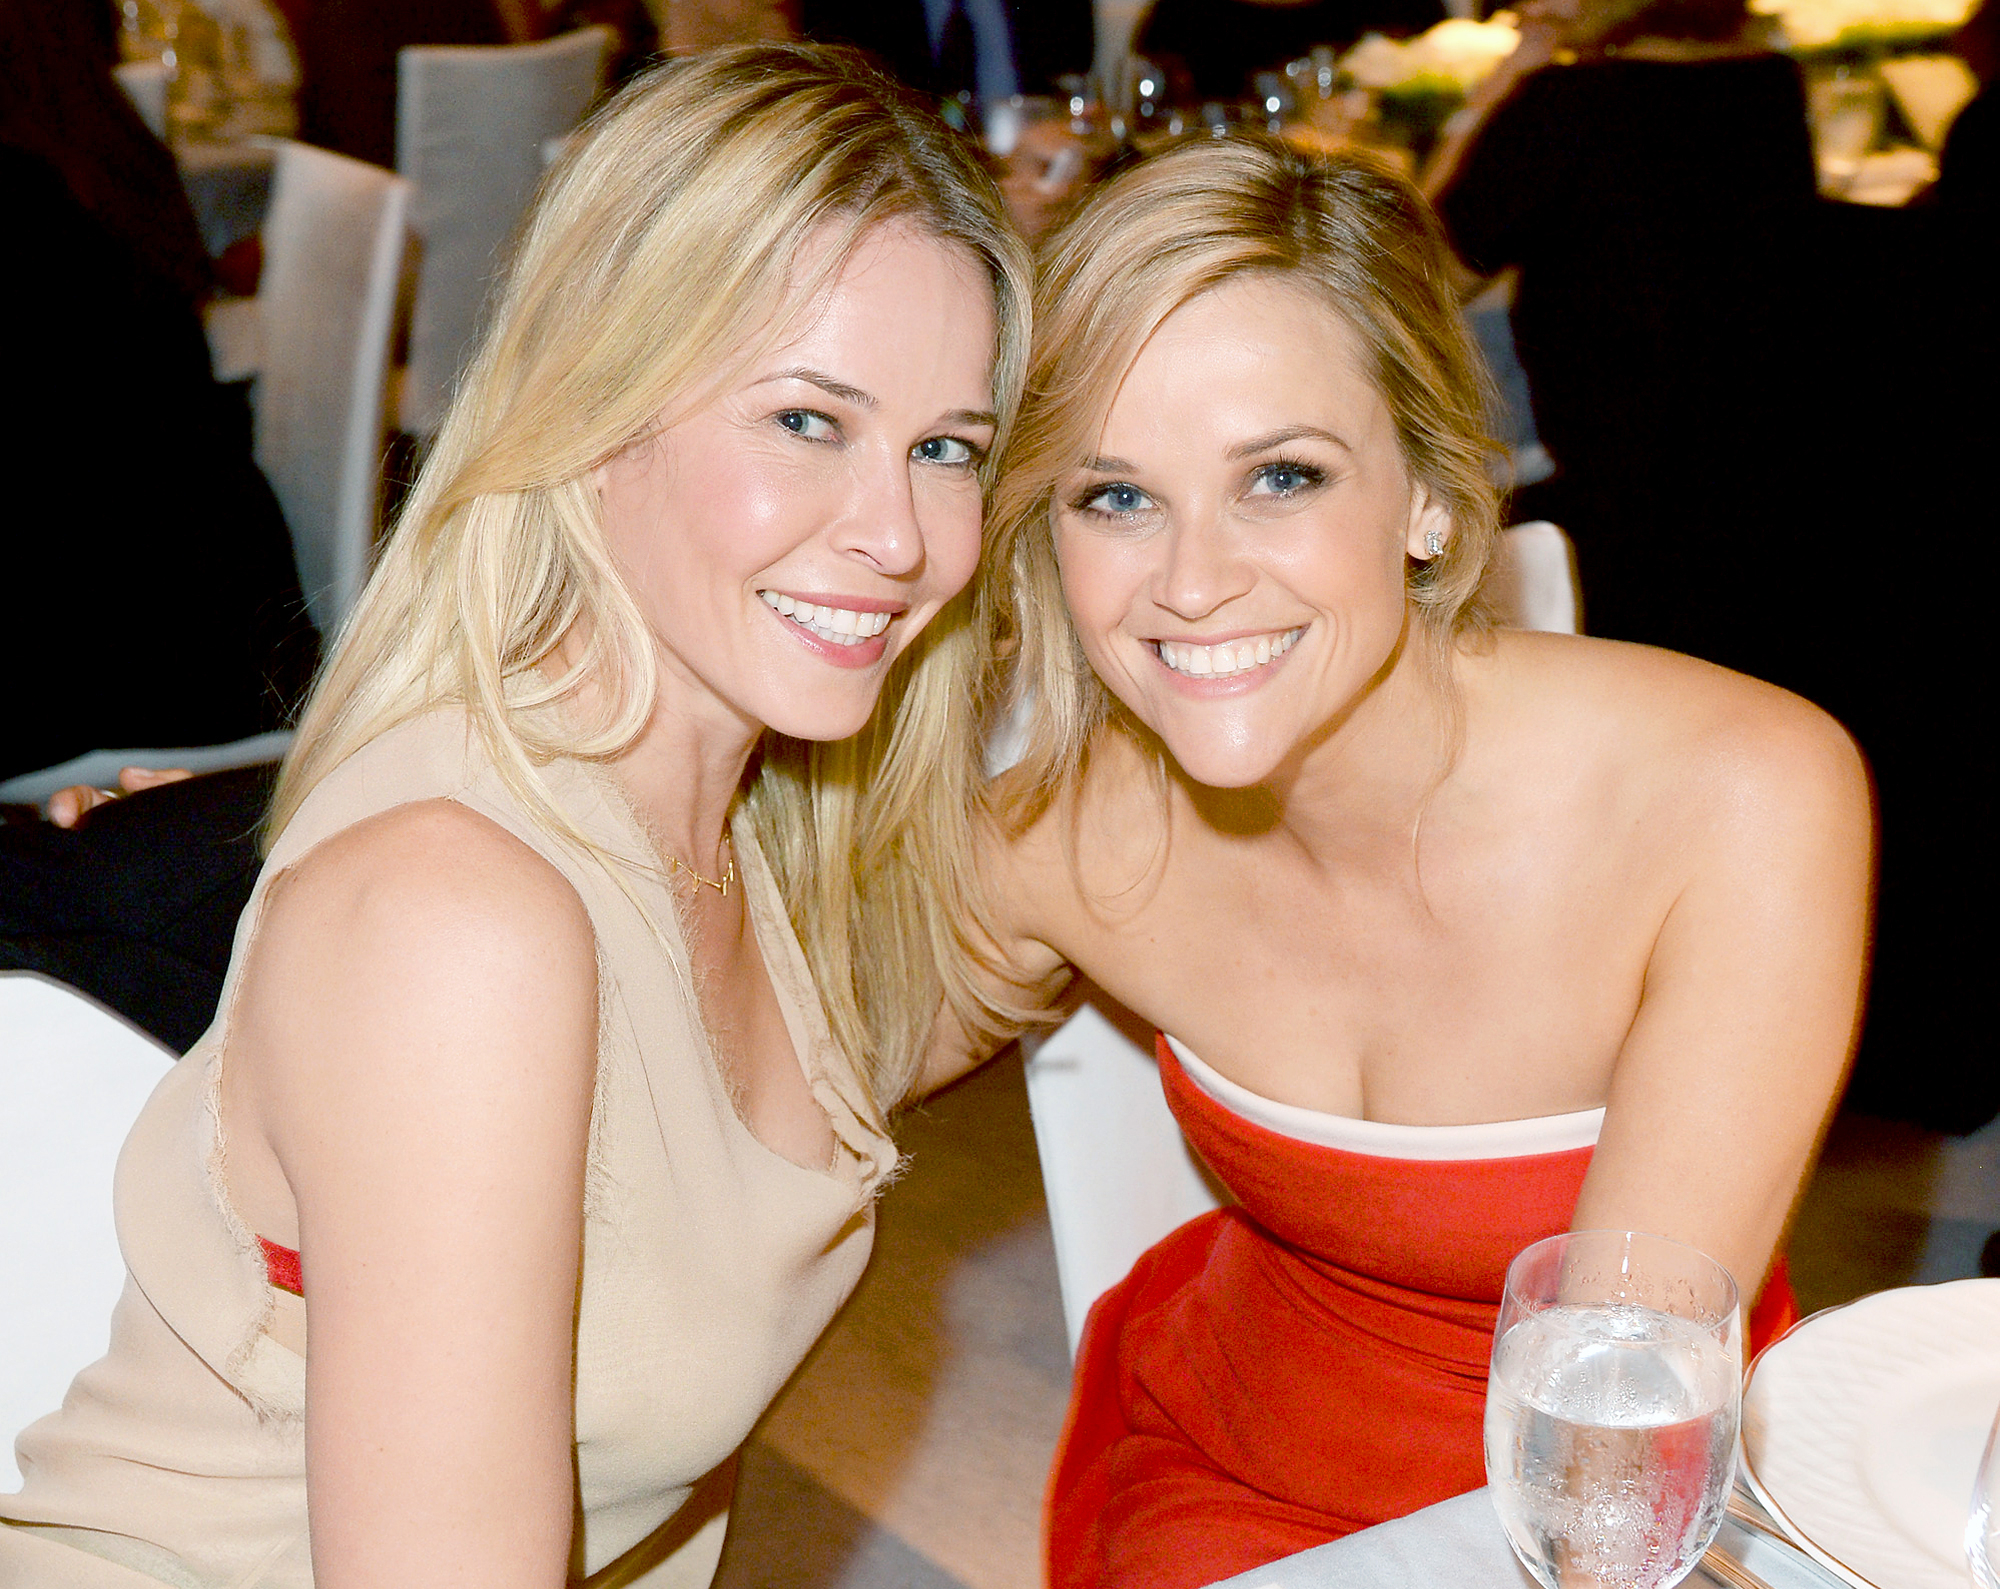 Chelsea Handler and Reese Witherspoon